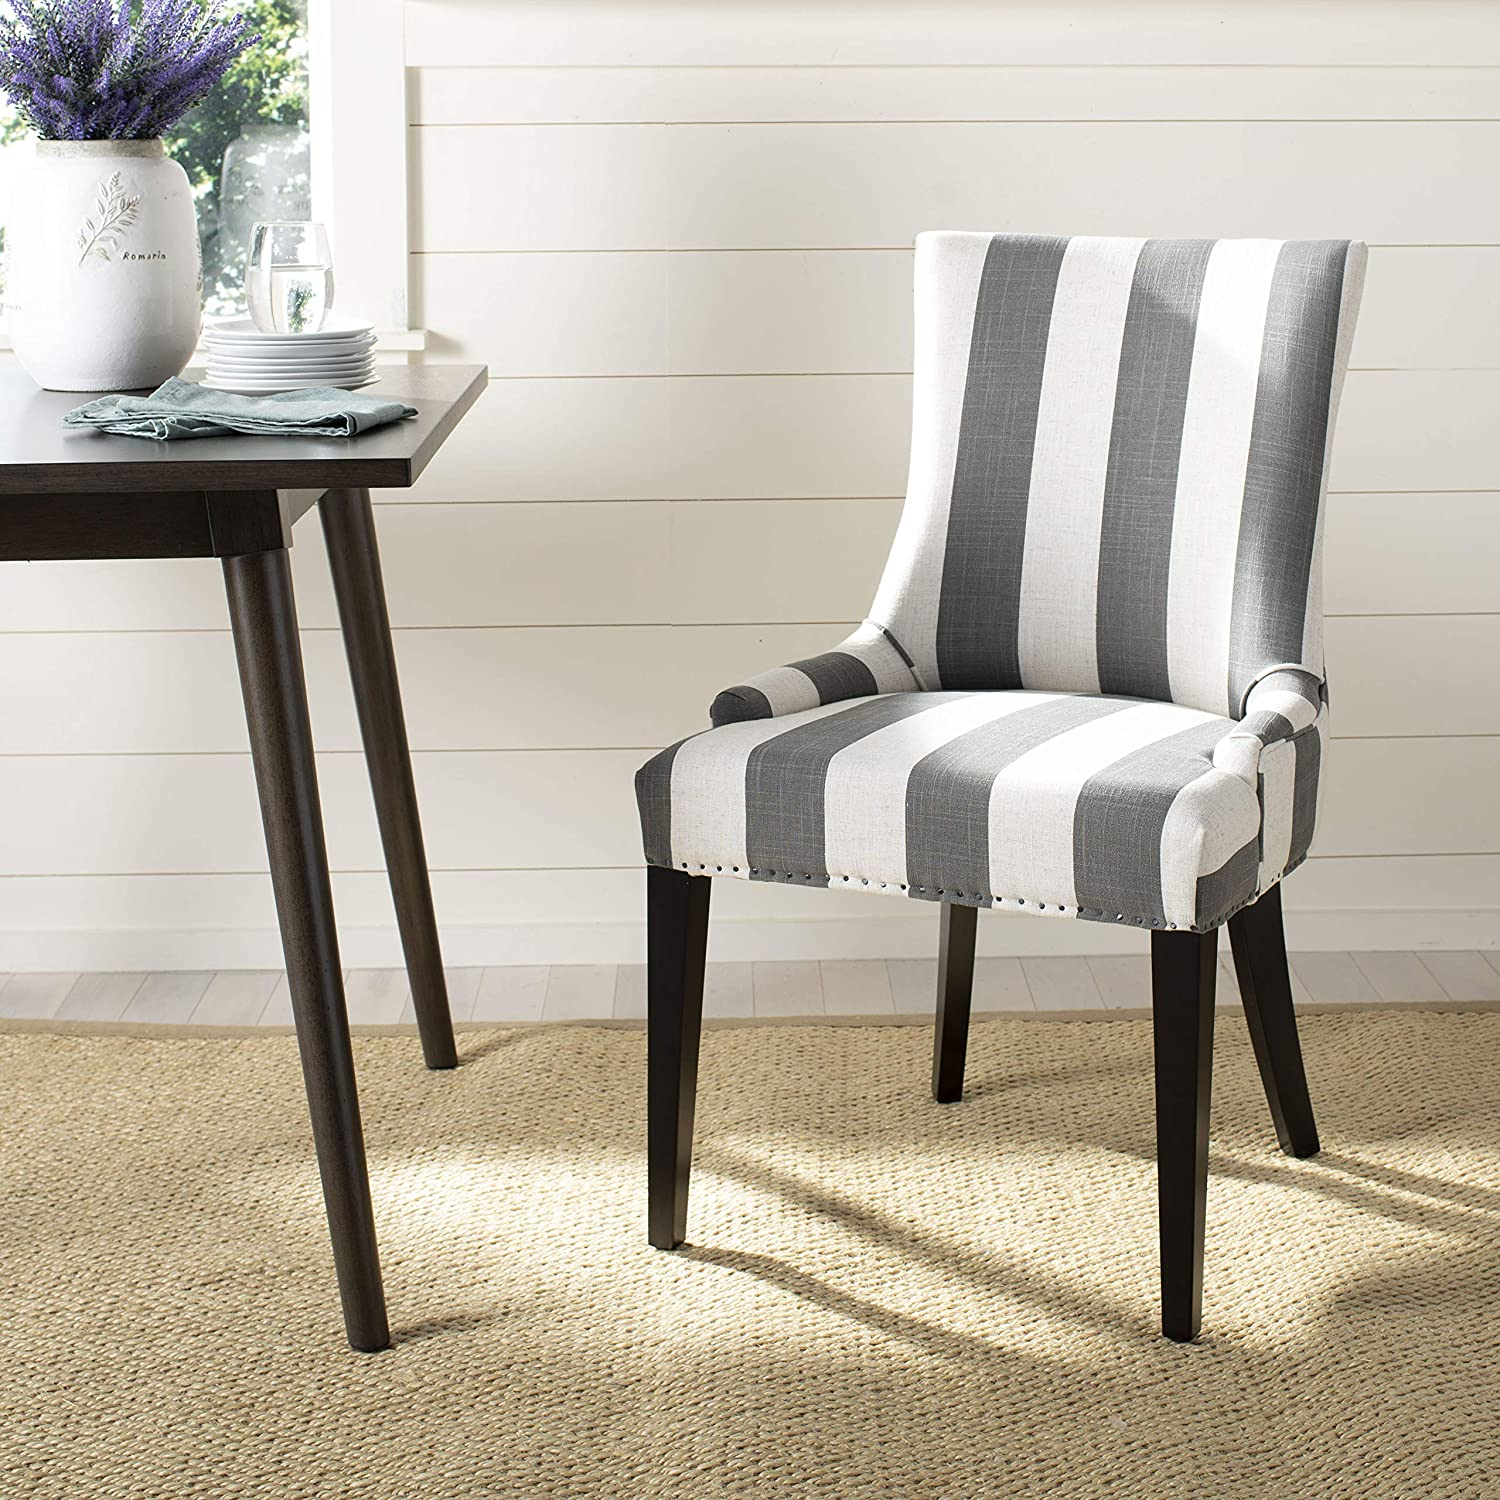 Amazon Com Safavieh Mercer Collection Eva And White Striped Dining Chair With Trim Nail Head Grey Chairs